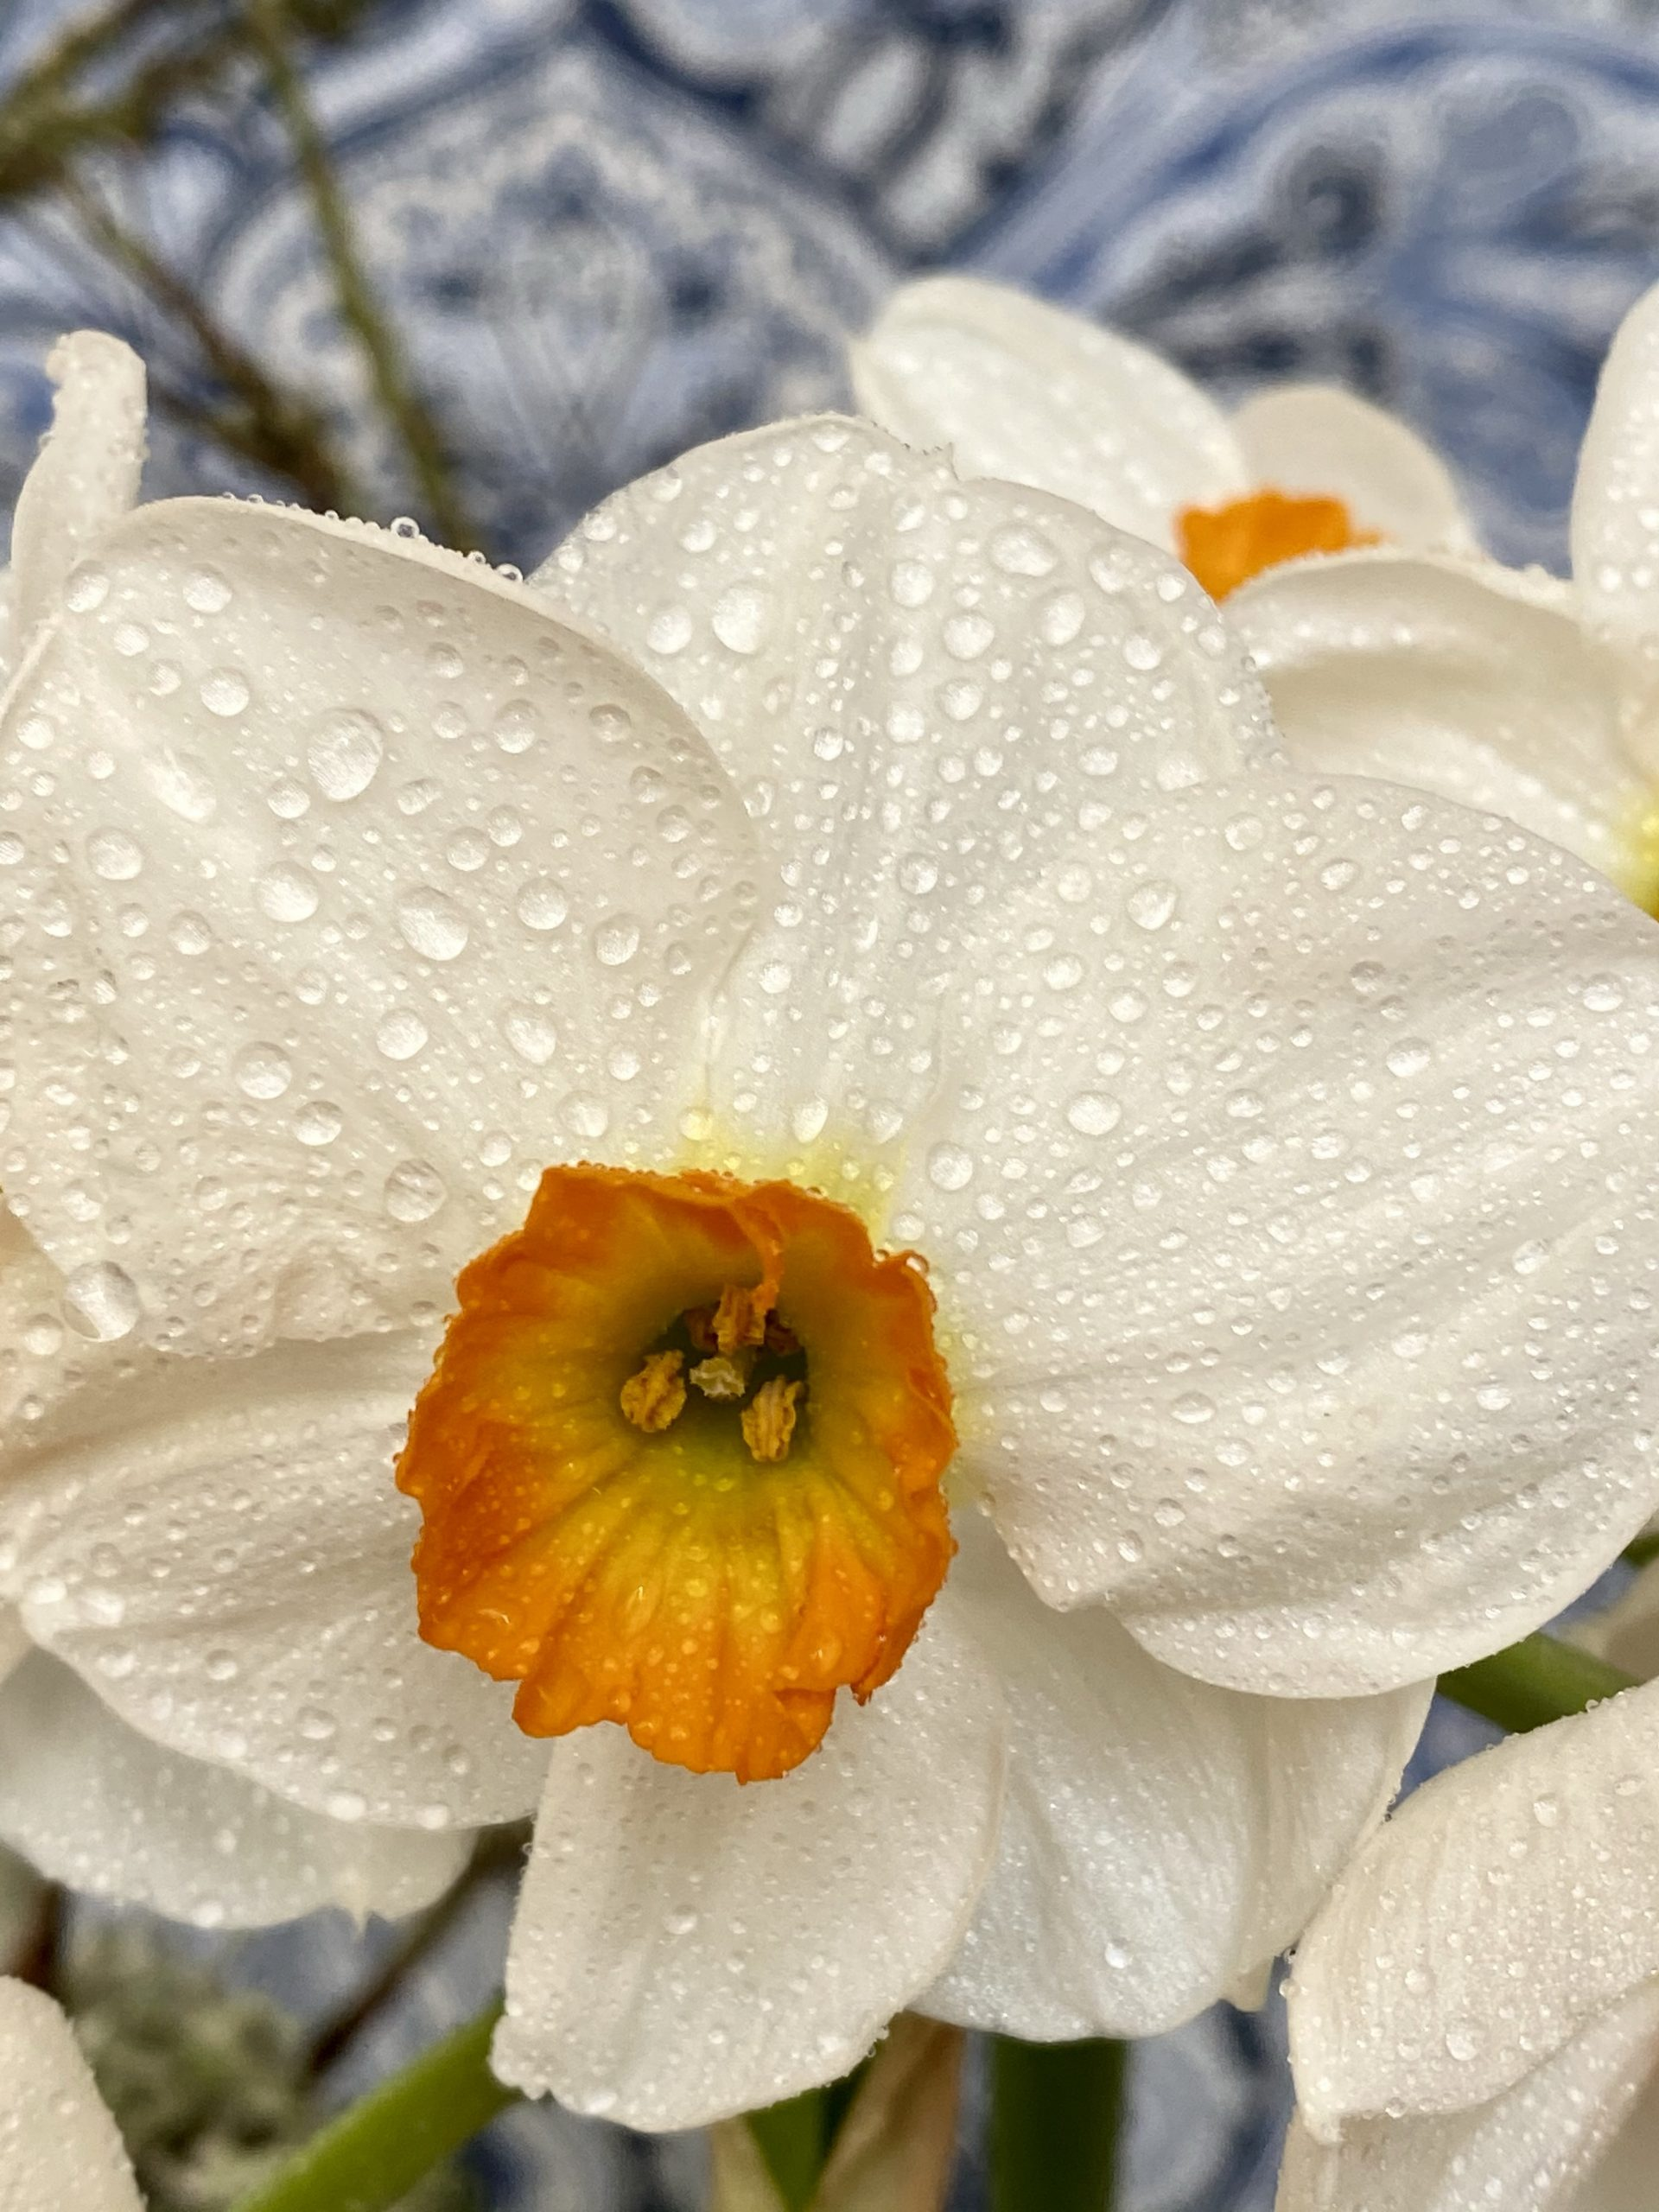 misted daffodil, daffodil close up, daffodil with white petals and yellow-orange trumpet